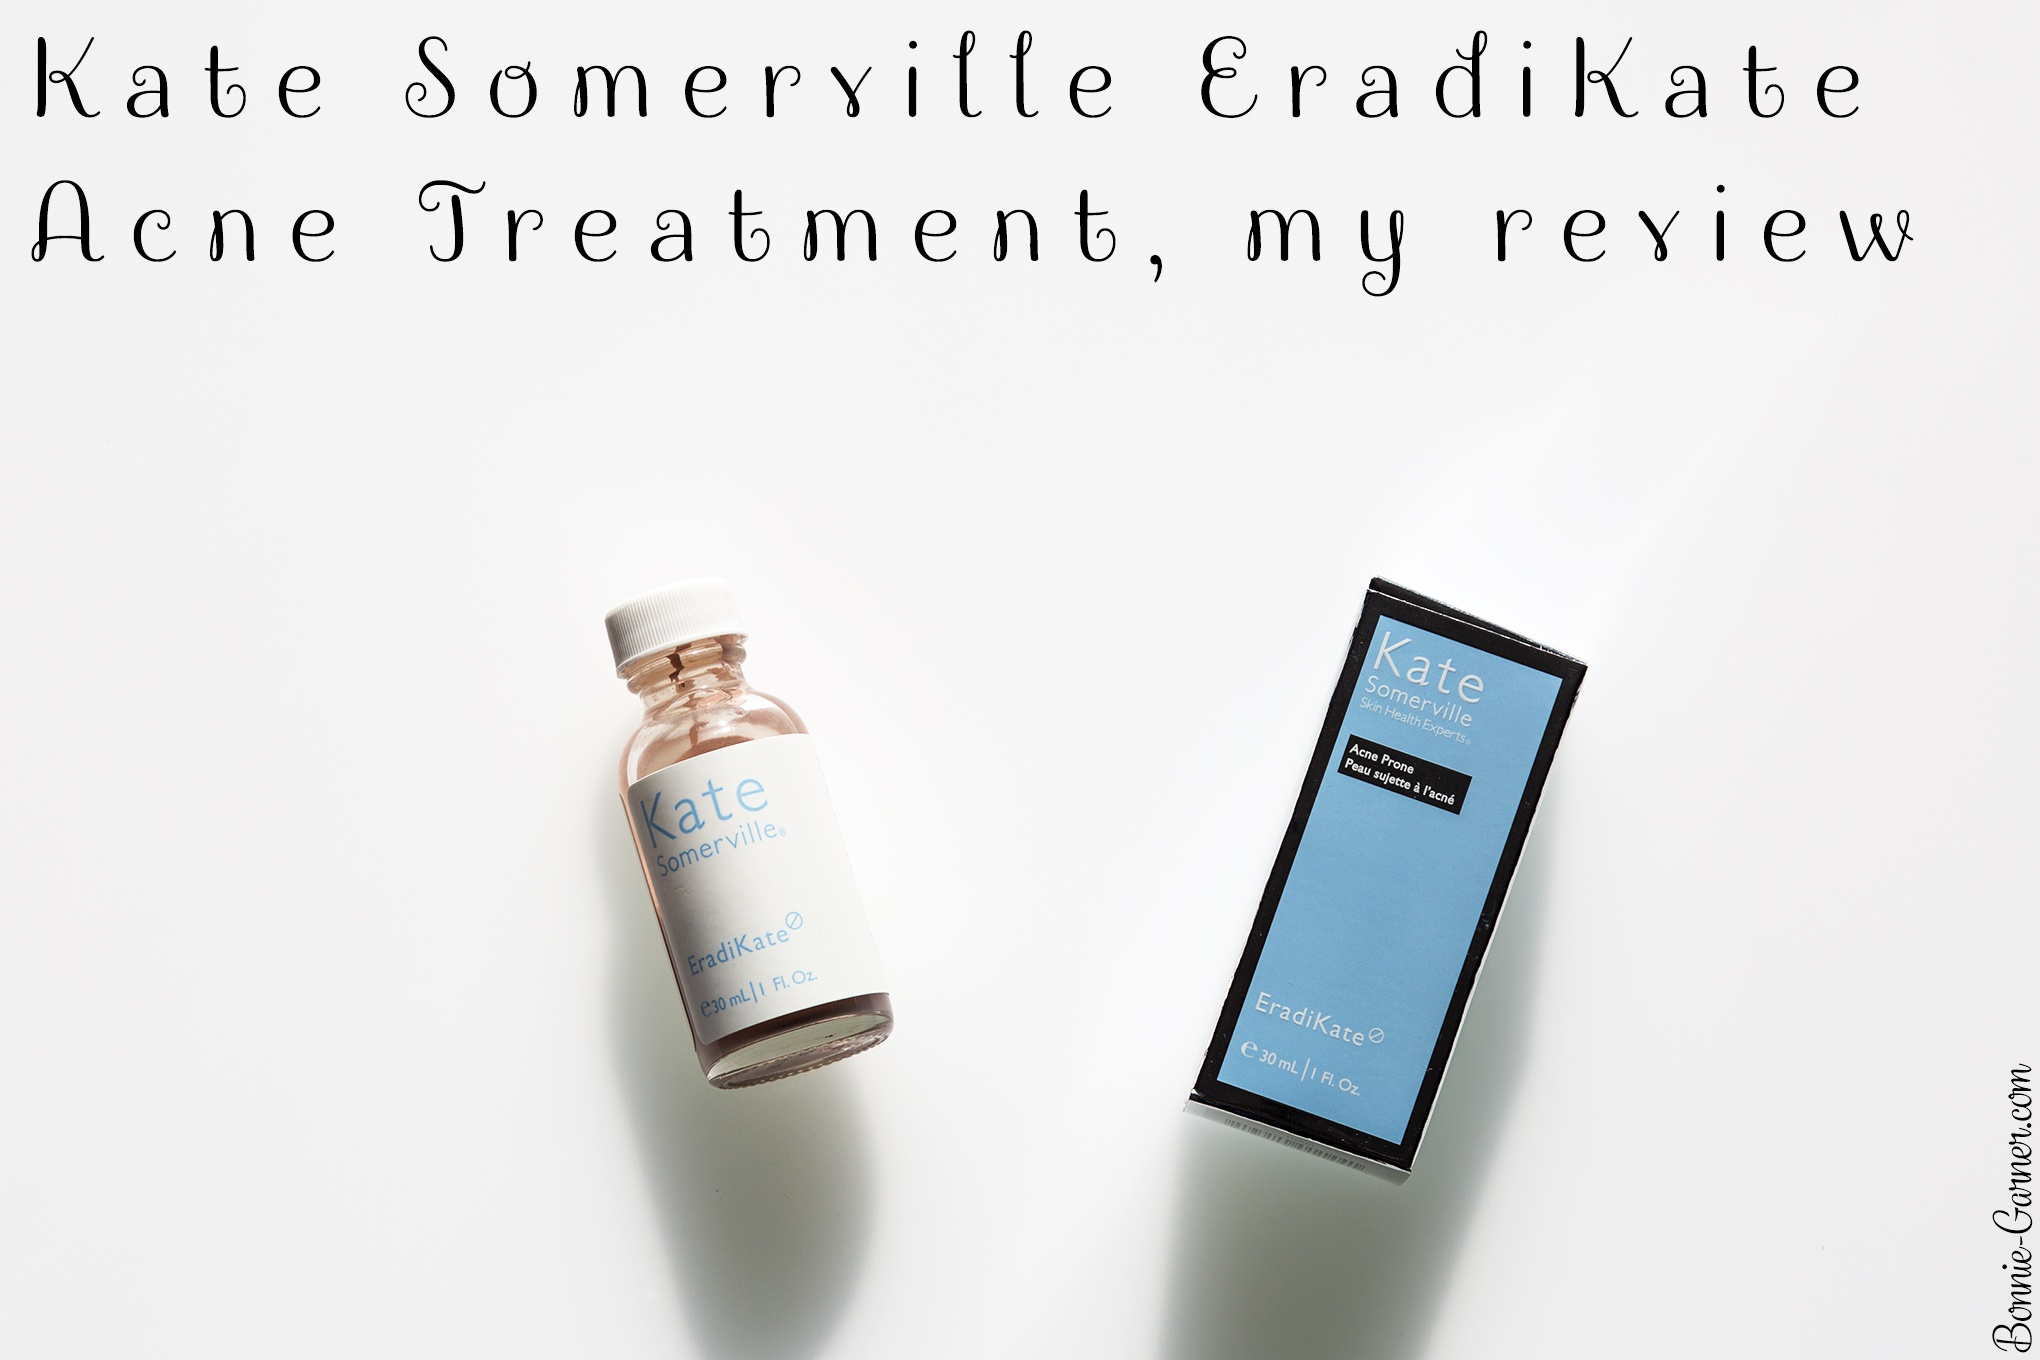 Kate Somerville EradiKate Acne Treatment, my review